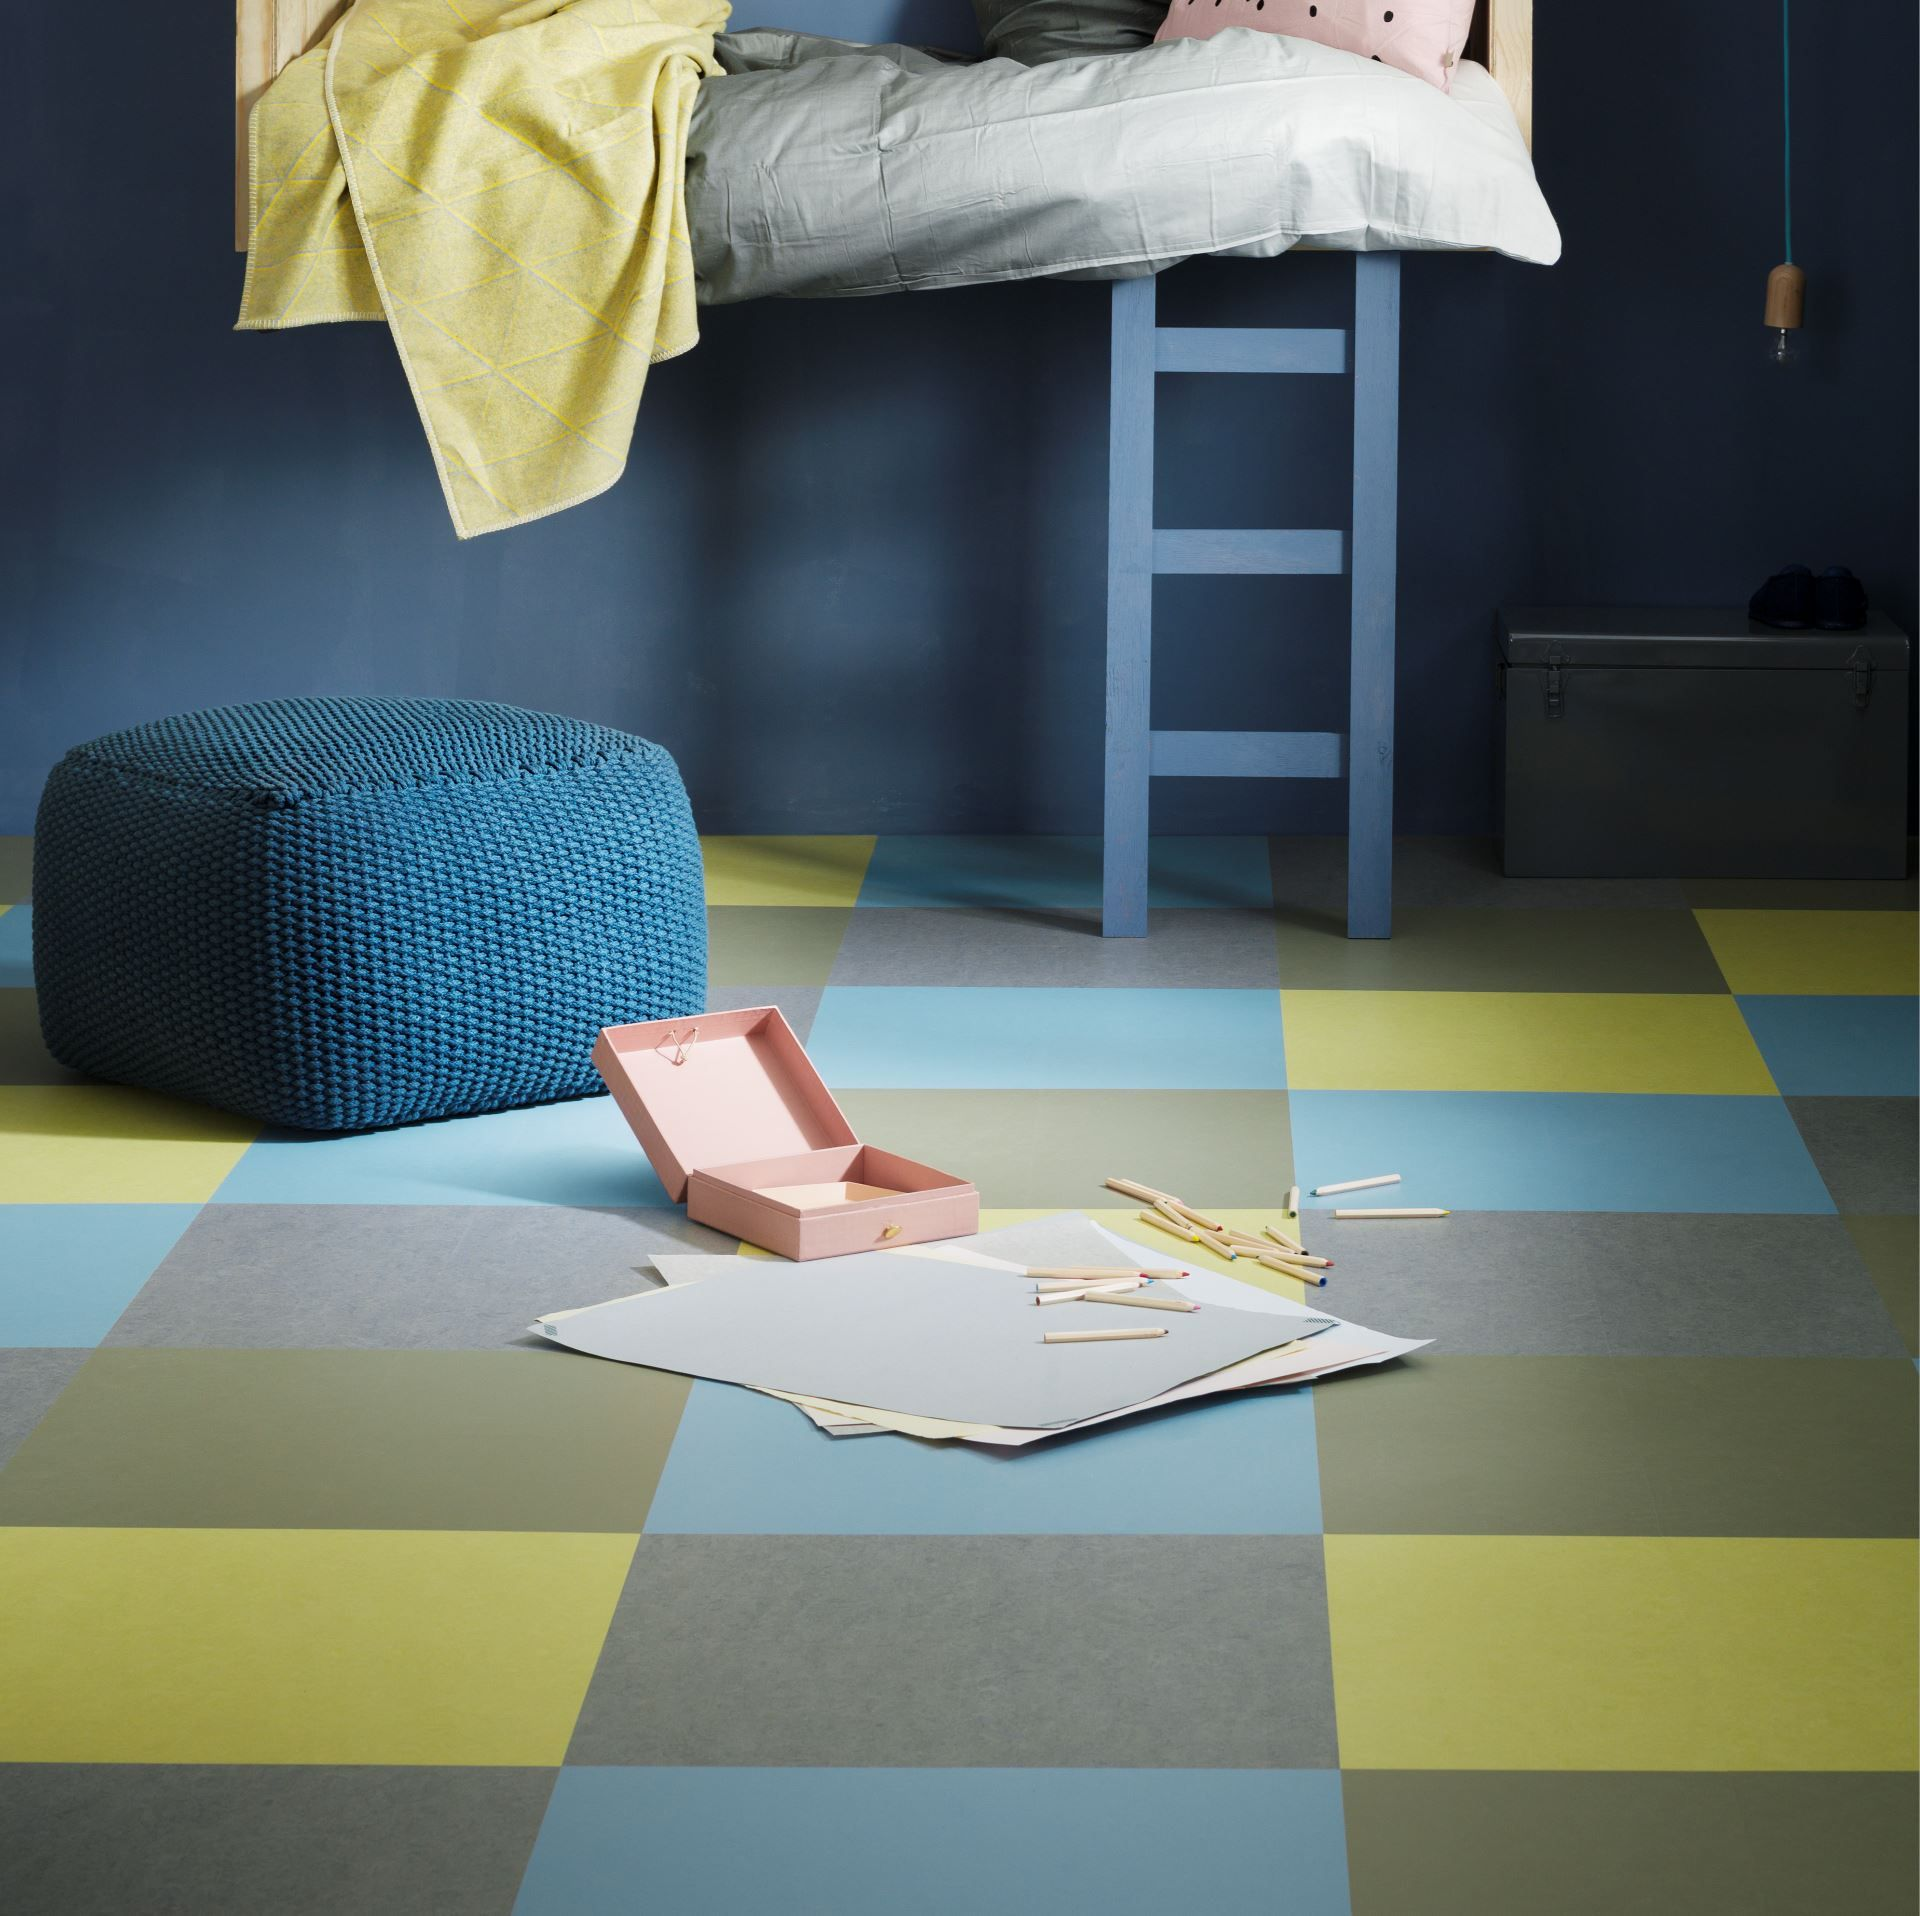 MARMOLEUM CLICK by Forbo Flooring Systems | retro kitchens ...